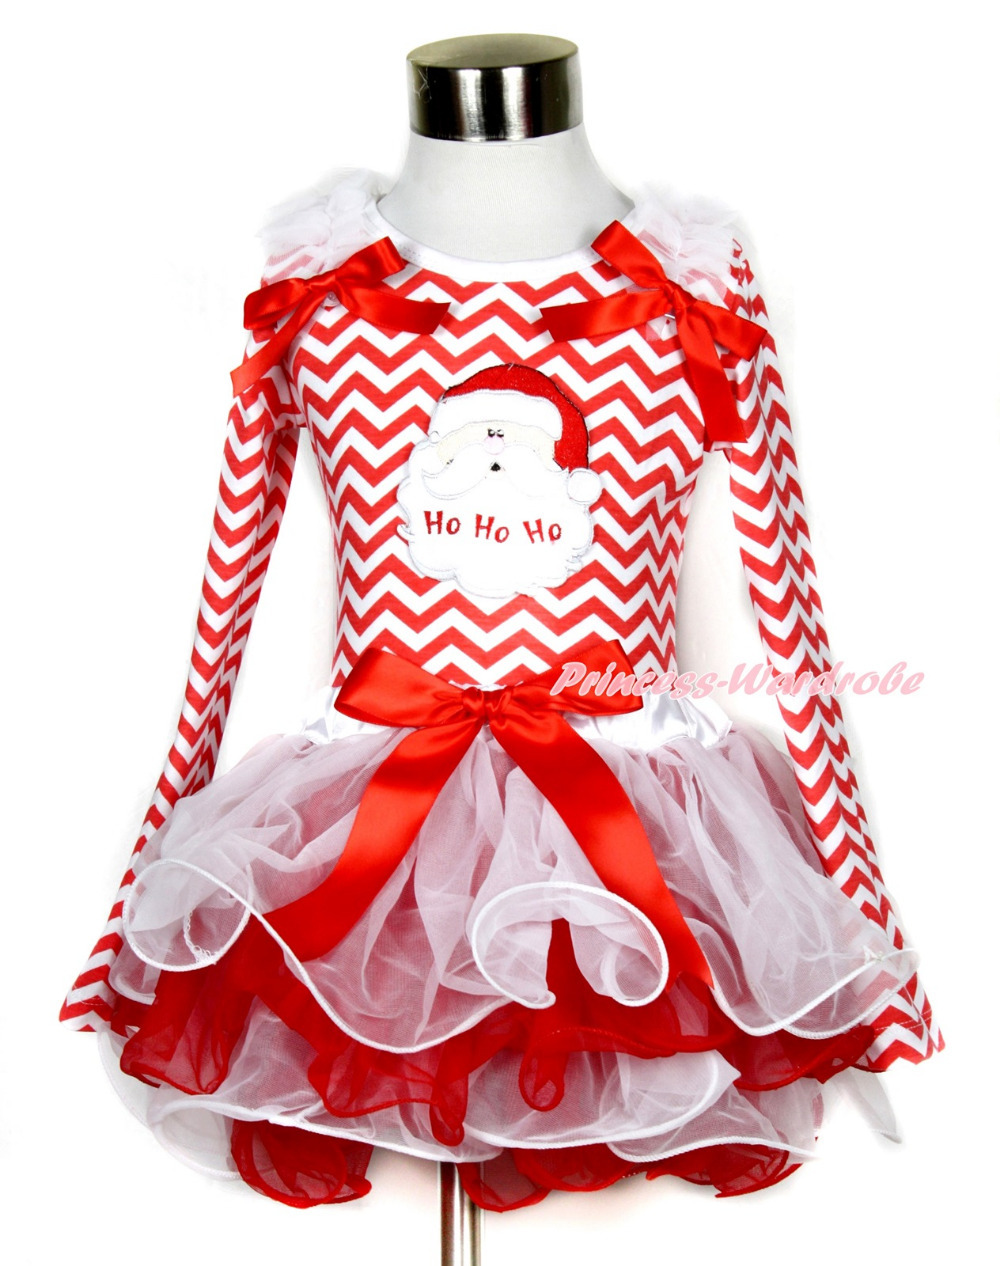 Xmas Red Bow White Red Petal Pettiskirt Red White Wave Long Sleeve Top Santa Claus MAMW330 my 1st christmas santa claus white top minnie dot petal skirt girls outfit nb 8y